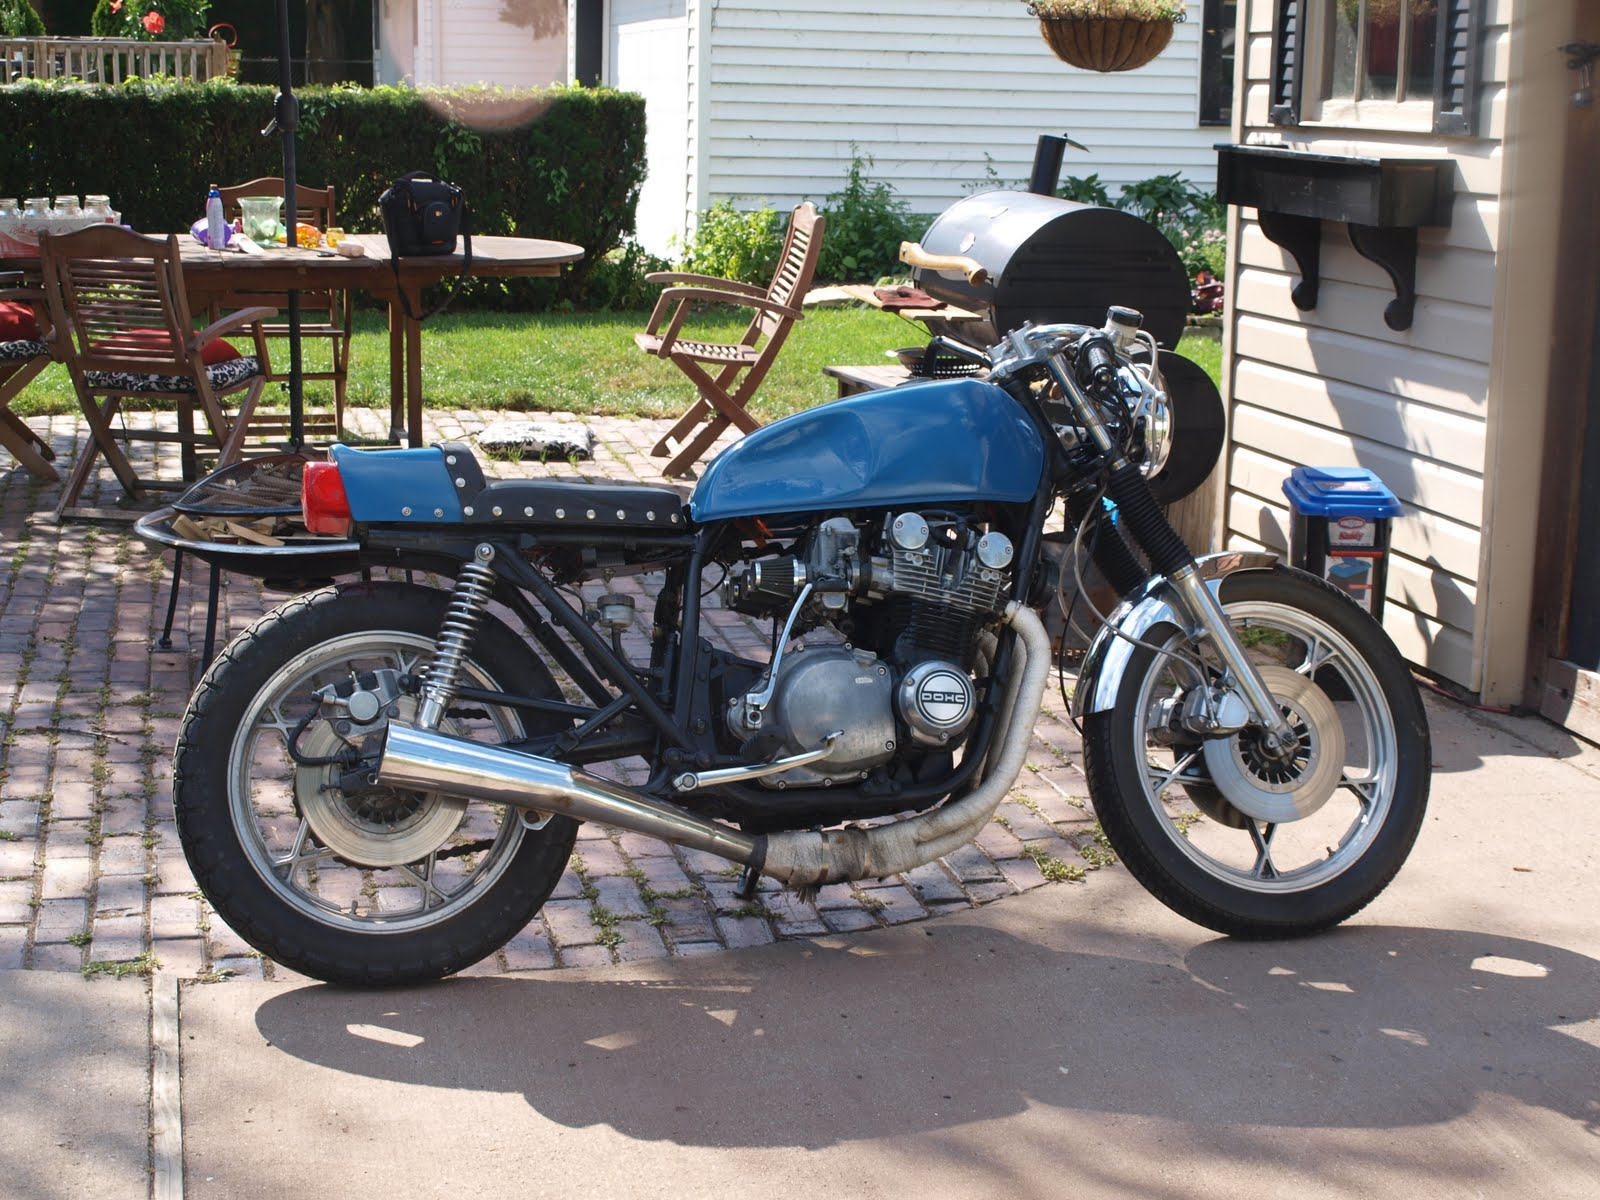 Build Shit Dude Suzuki Gs750 Cafe Mad Max Engine Diagram For A 30 Year Old Bike I Think It Rides Pretty Great And Pulls Strong To Quote Friend Its Vintage Fast Im Proud Of